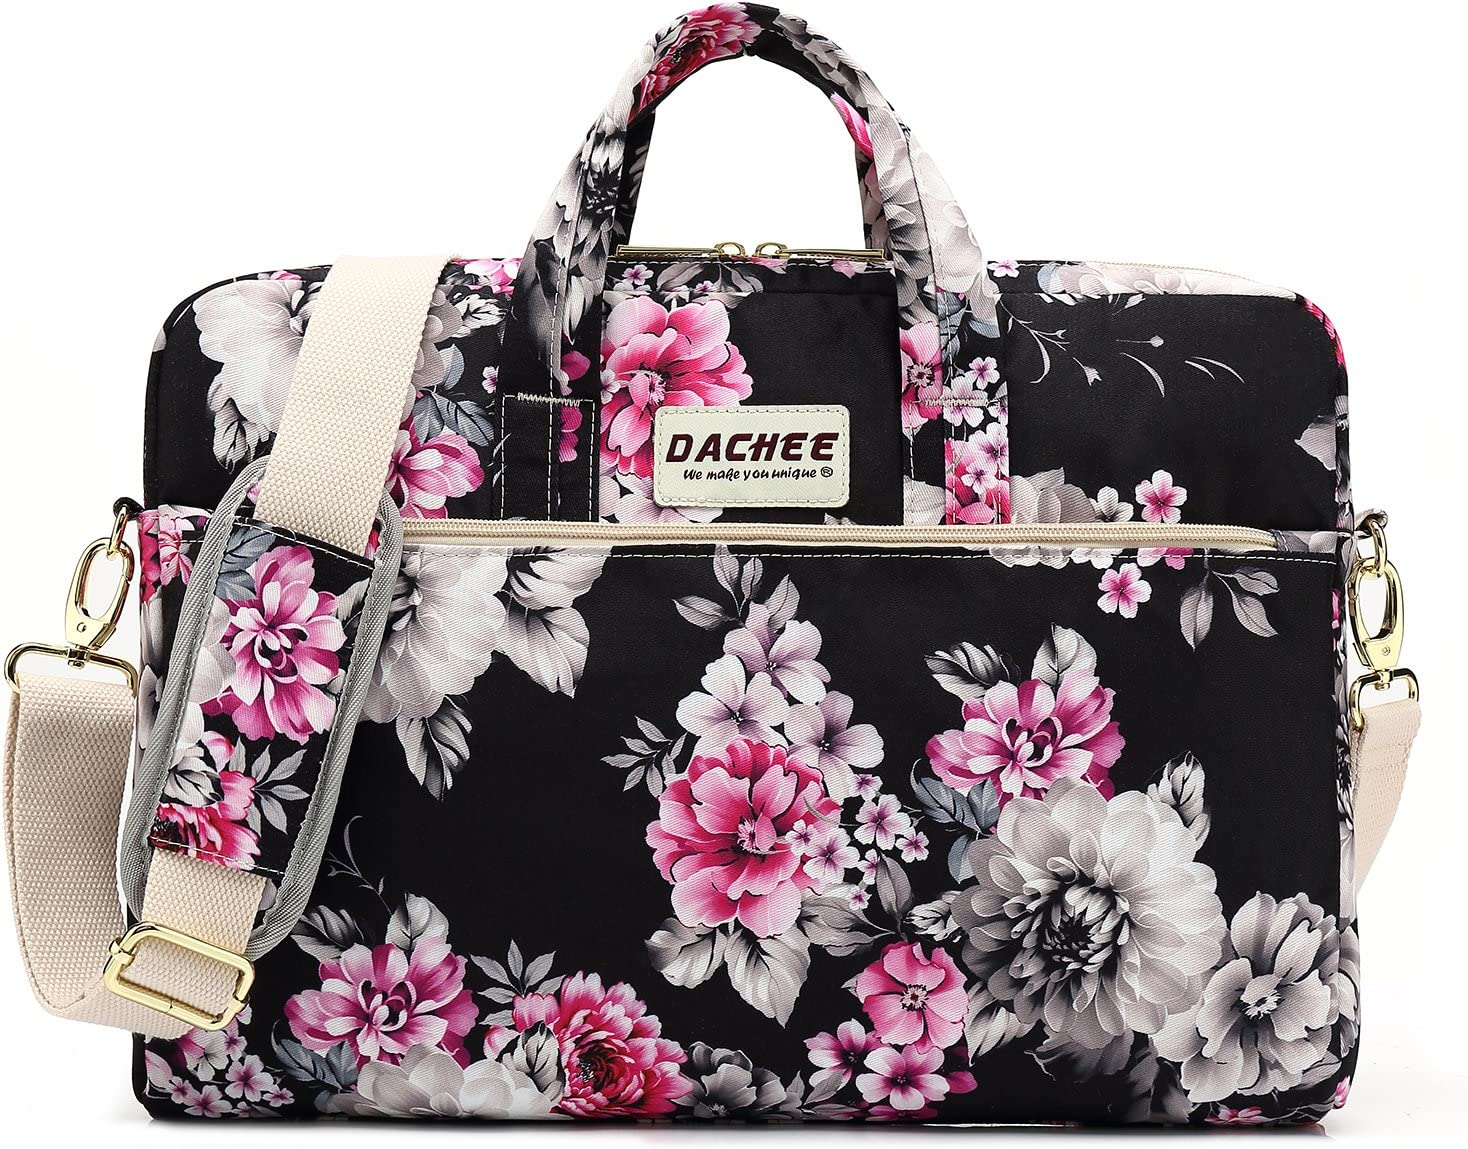 DACHEE Black Chrysanthemum Pattern Waterproof Laptop Shoulder Messenger Bag Case Sleeve for 12 inch 13 inch Laptop and 11/12/13.3 inch